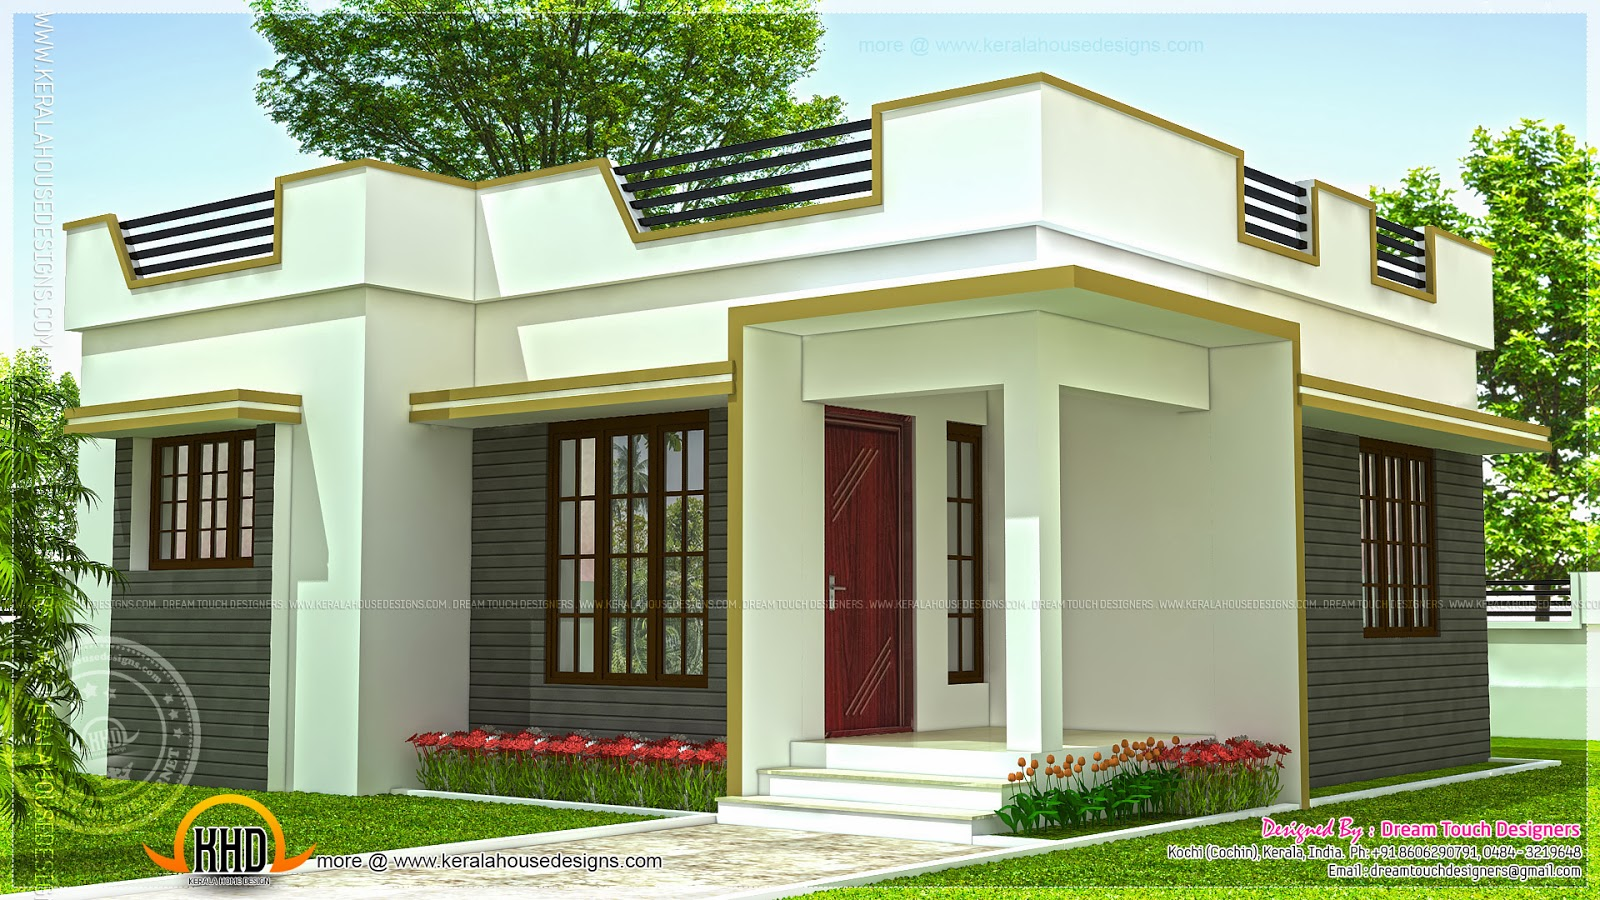 Fabulous 35 Small And Simple But Beautiful House With Roof Deck Largest Home Design Picture Inspirations Pitcheantrous